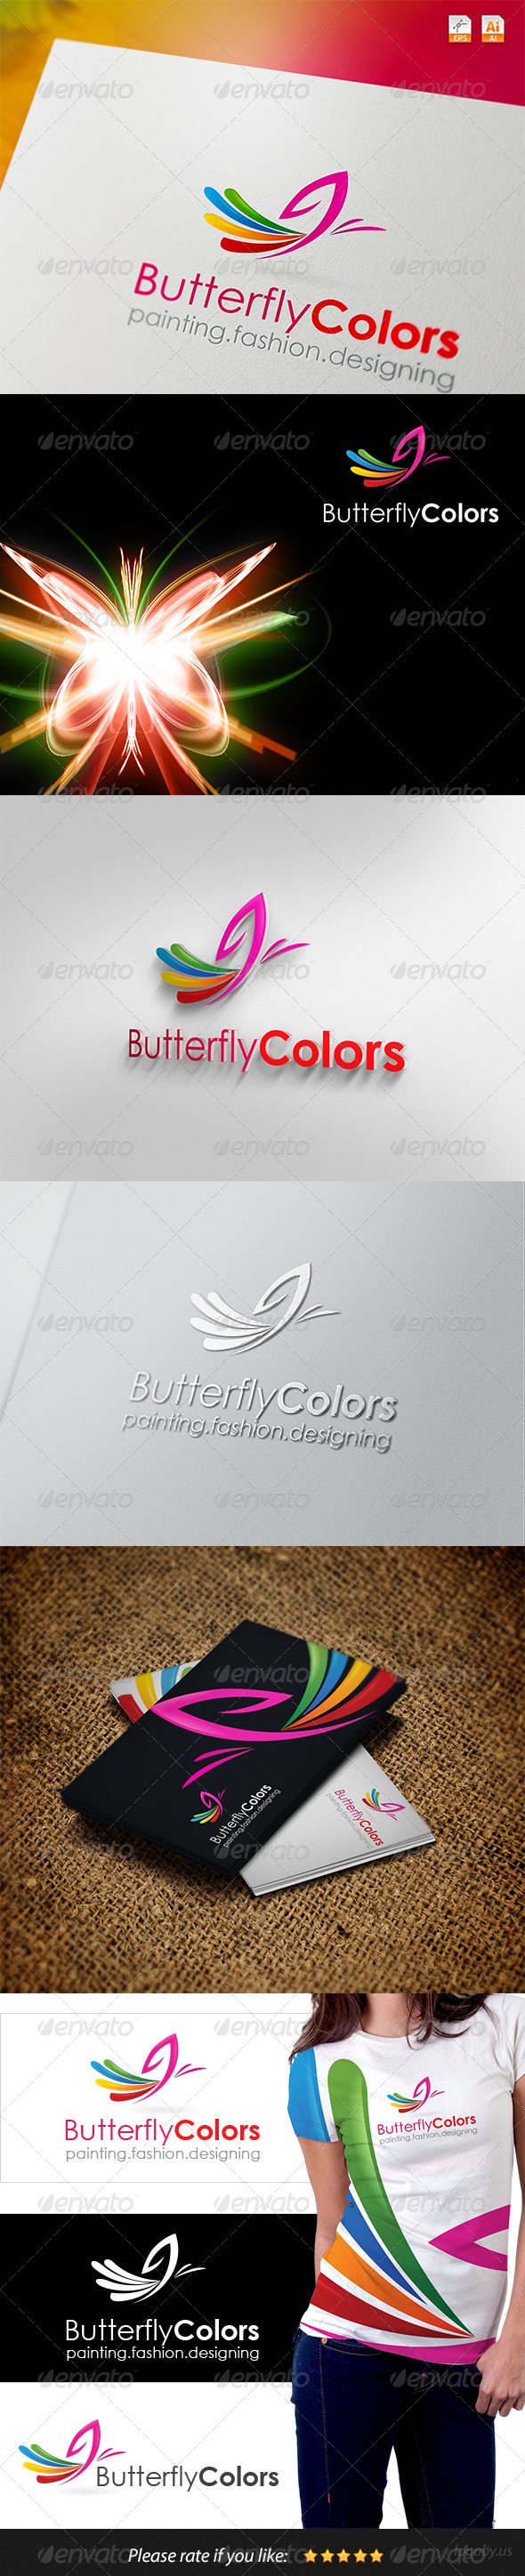 Butterfly Colors Logo - Vector Abstract